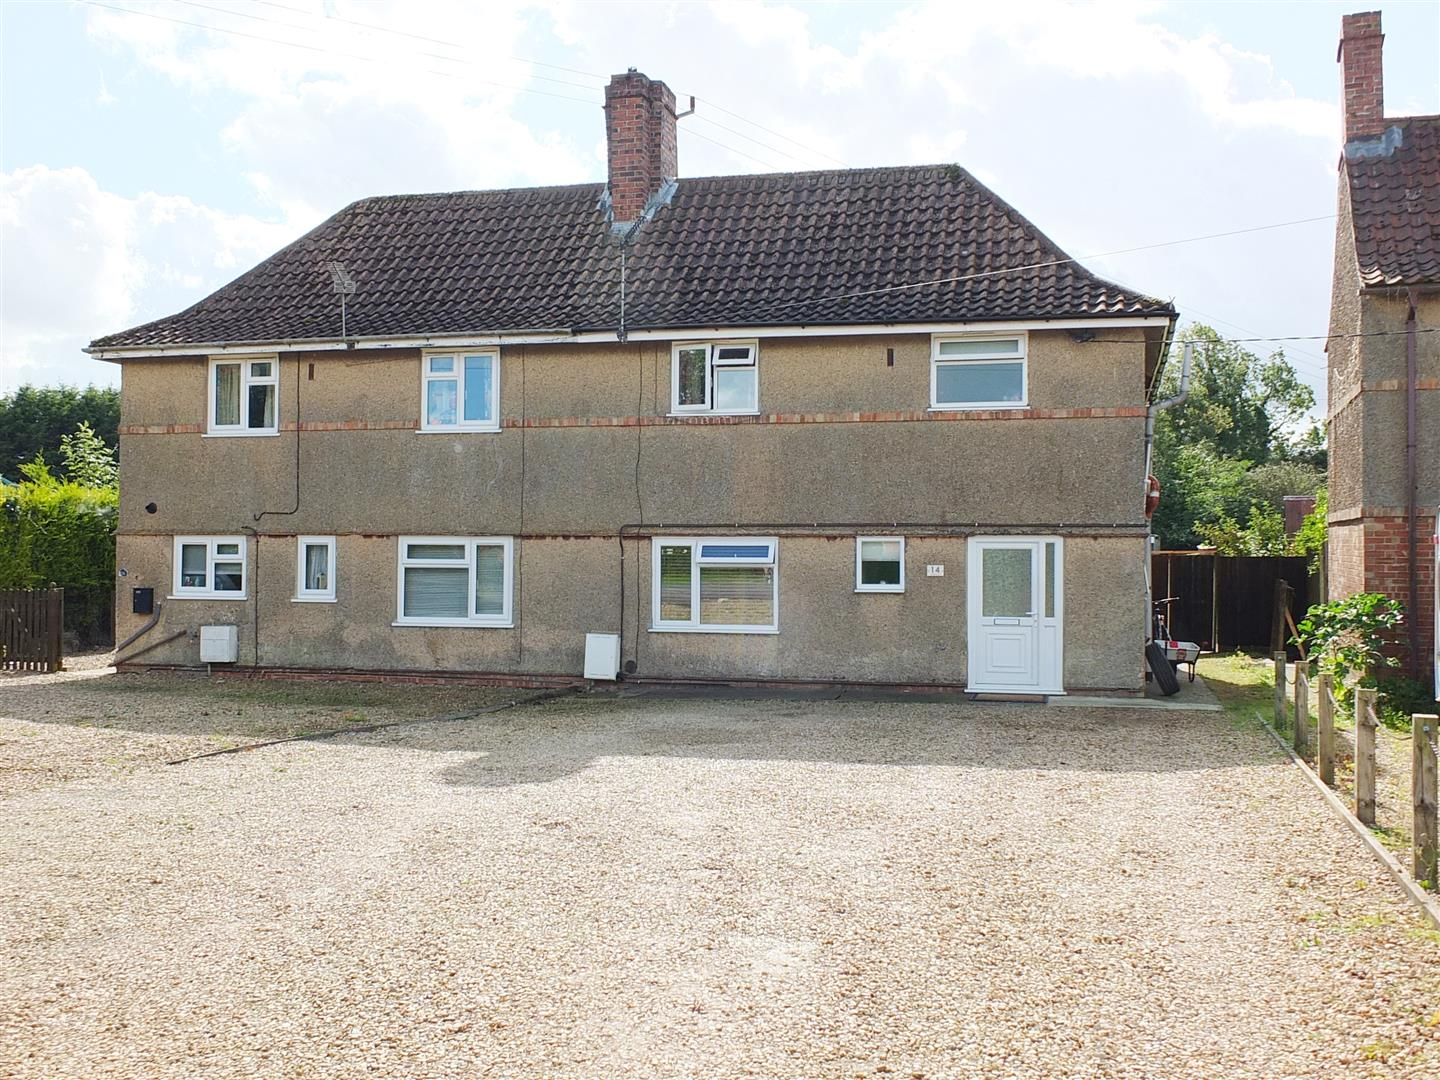 3 bed semi-detached house for sale in Long Sutton Spalding, PE12 9EF - Property Image 1